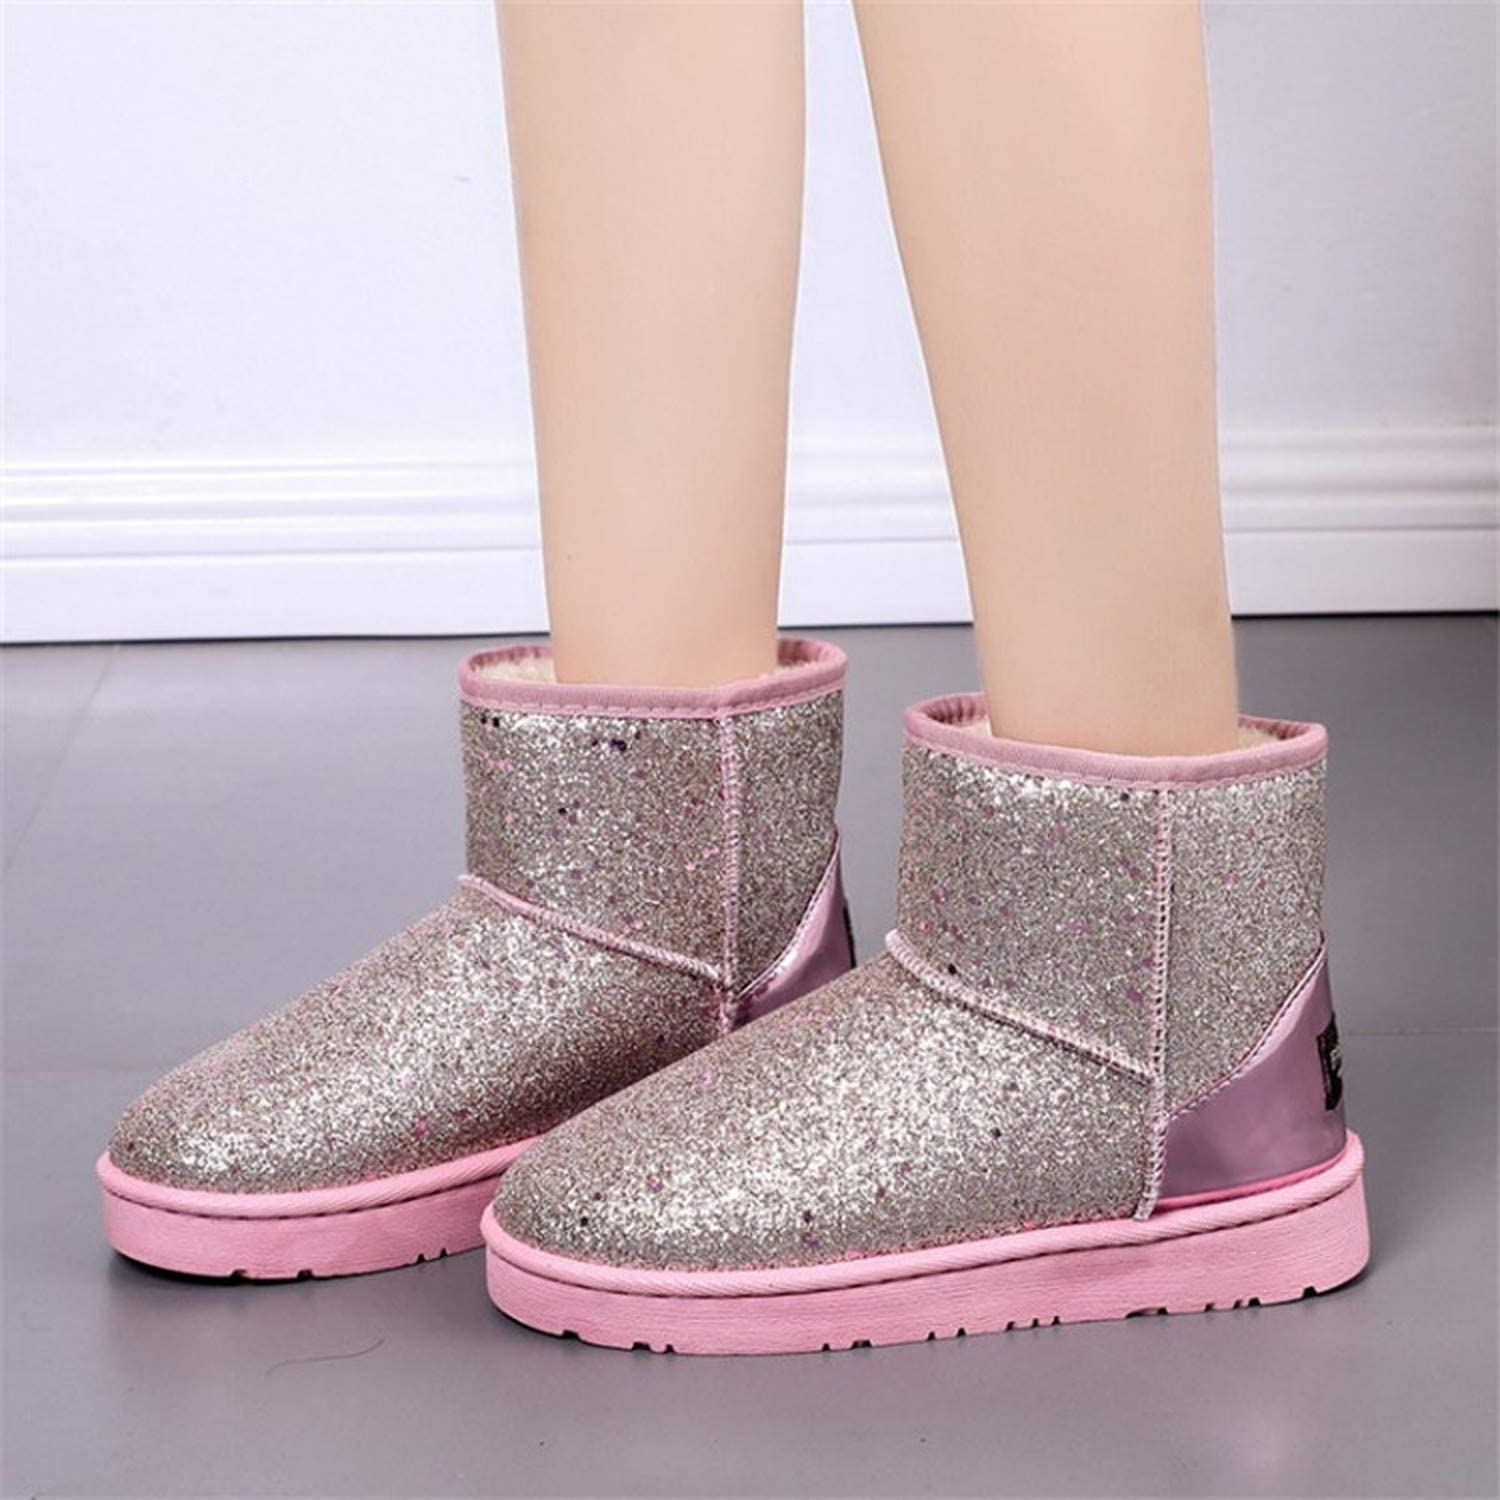 mybeautifulstore 1 Winter Boots Women Ankle Boots Glitter Warm Snow Boots Platform Shoes Woman Comfortable